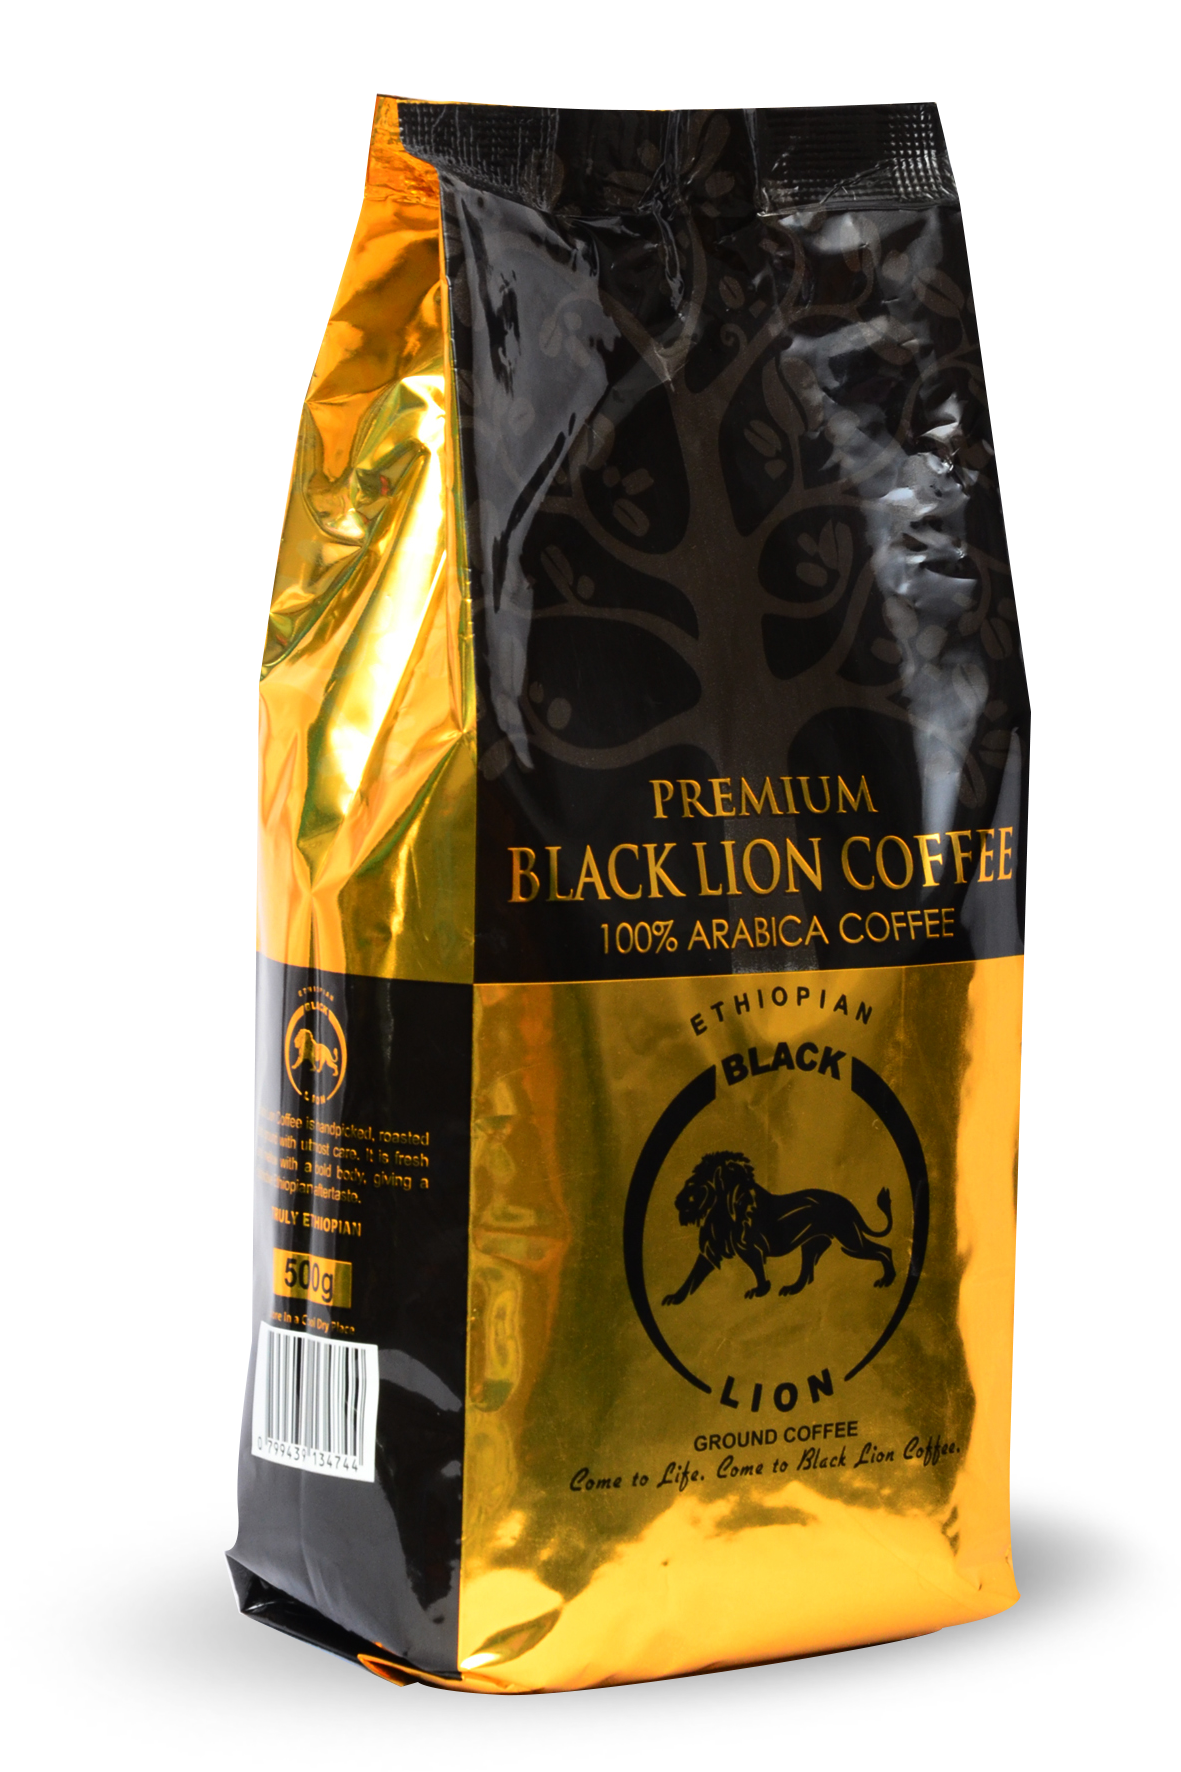 500gm (1.6Oz) Ground Coffee Black Lion Premium Coffee Image